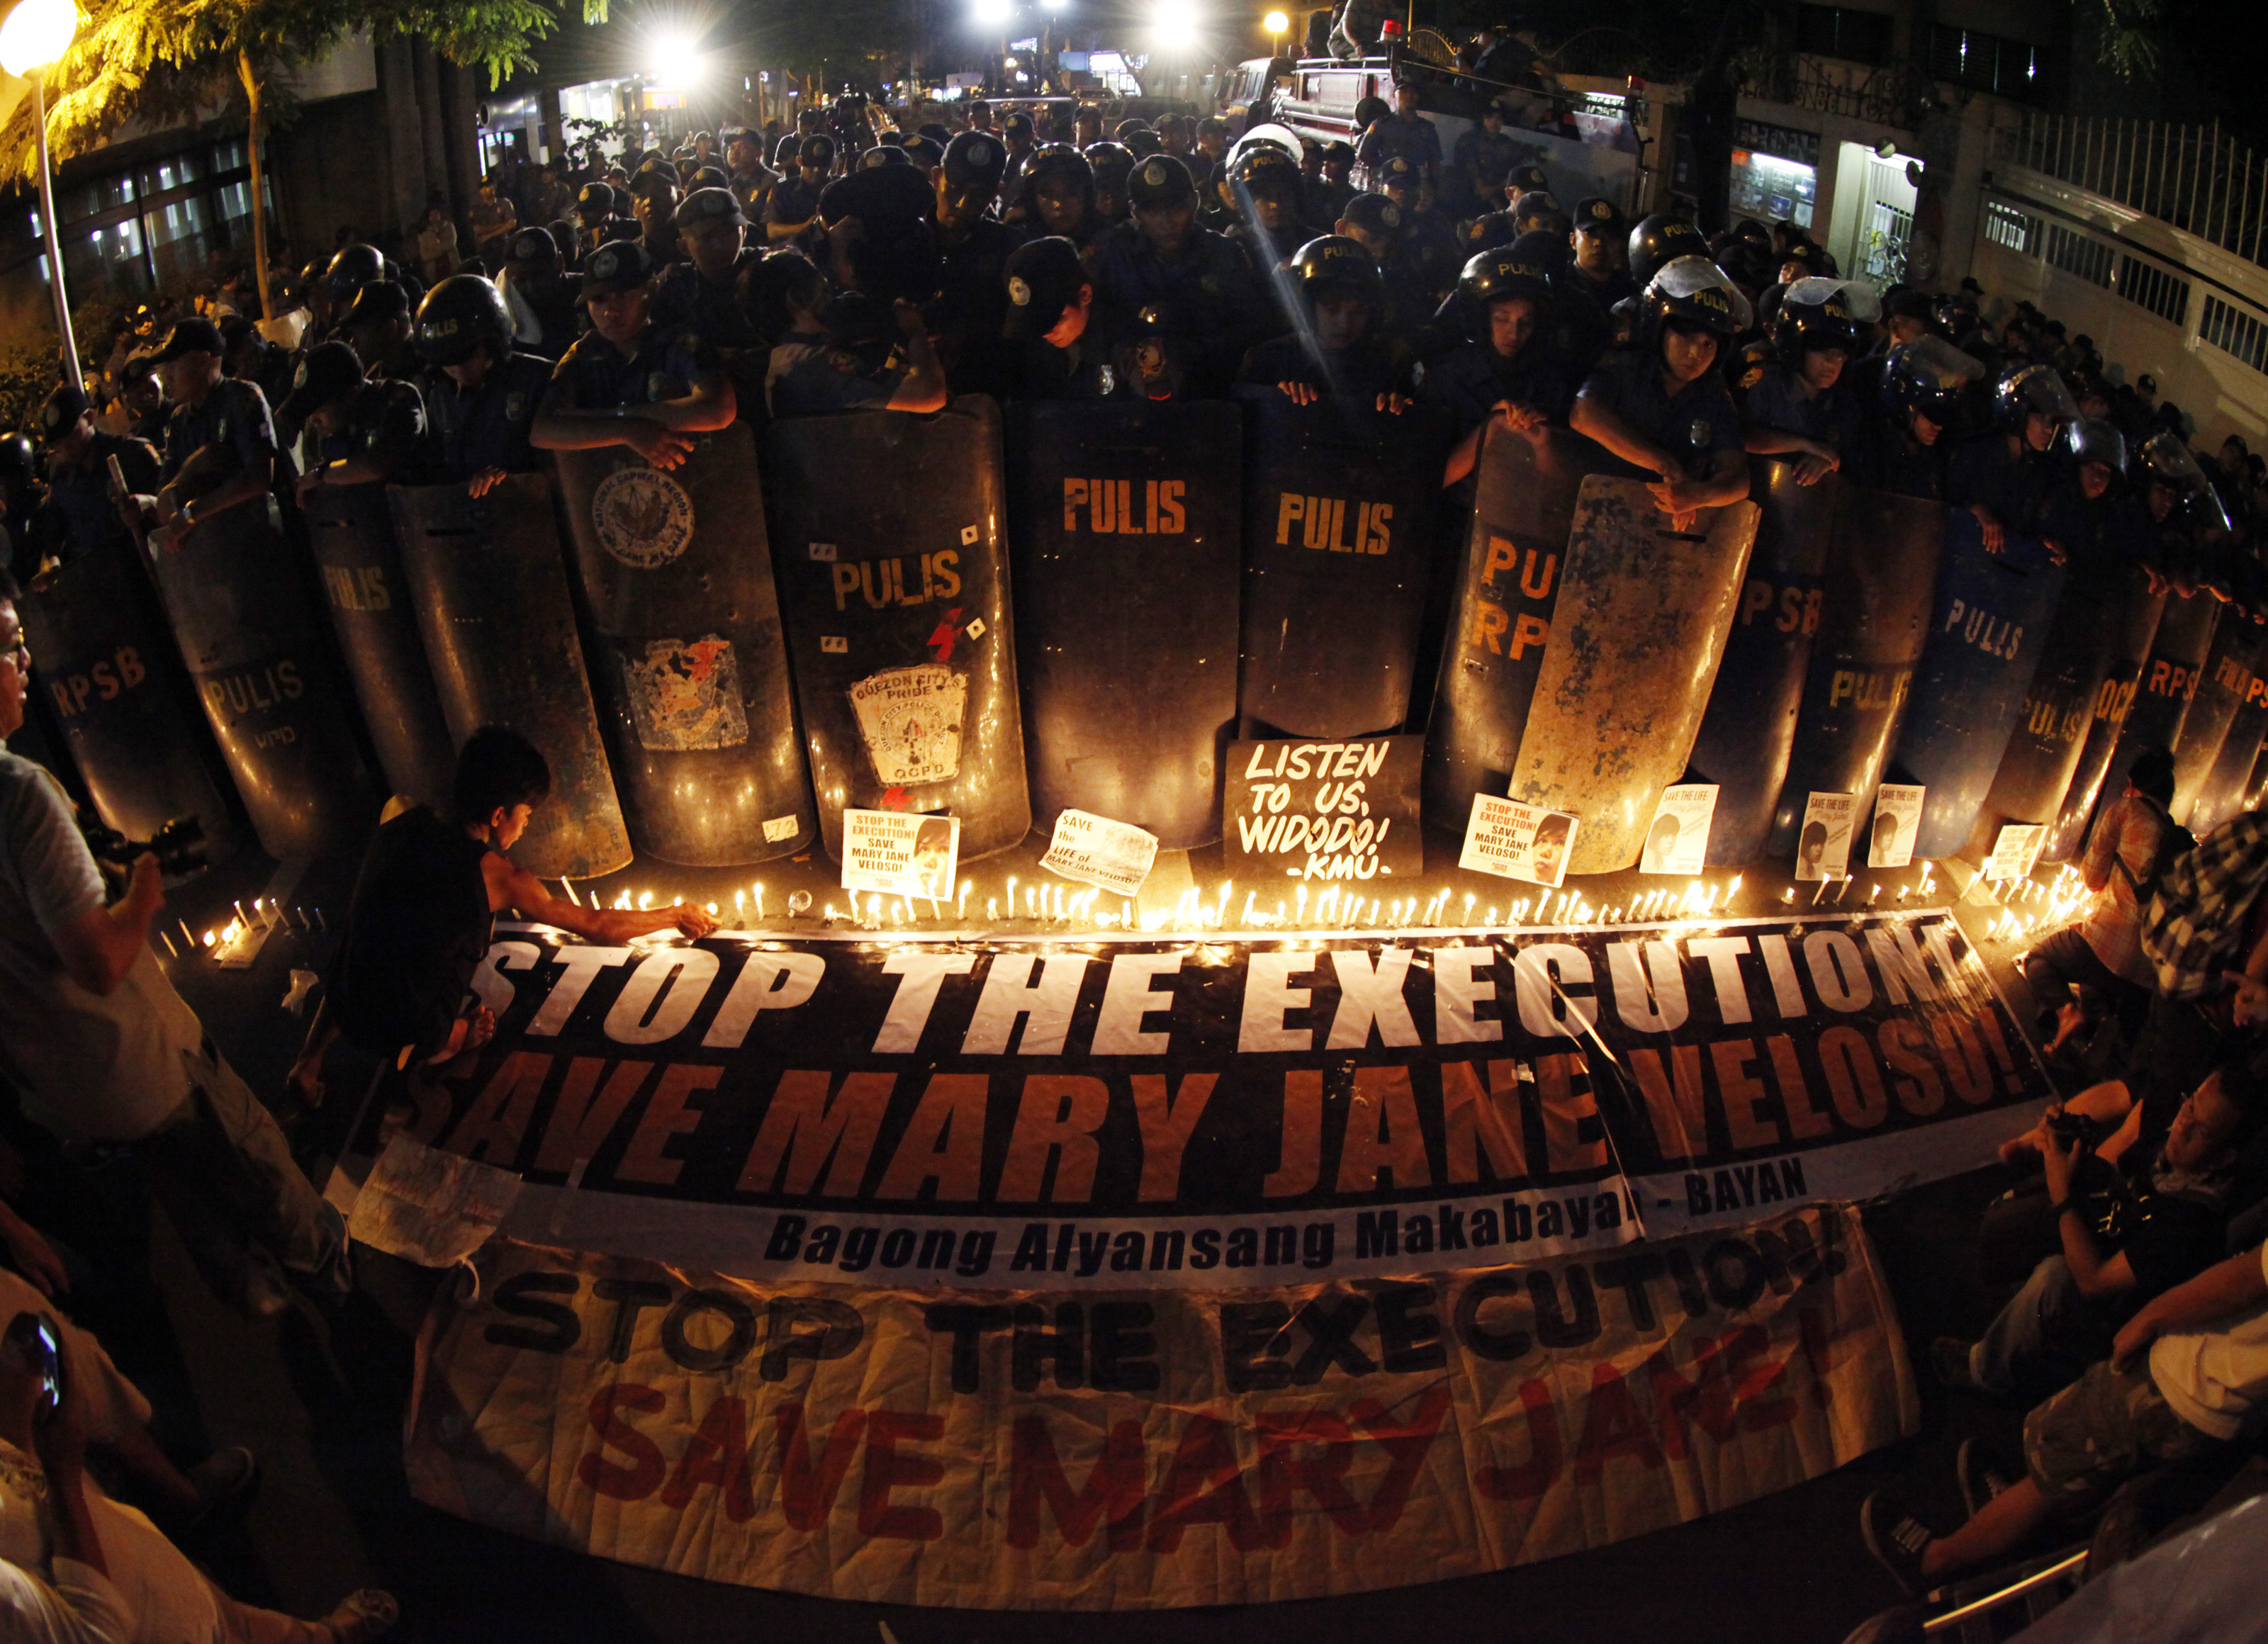 VIGIL. Filipino anti-riot police stand guard next to supporters of Mary Jane Veloso in the Philippines on April 28. Photo by Francis Malasig/EPA